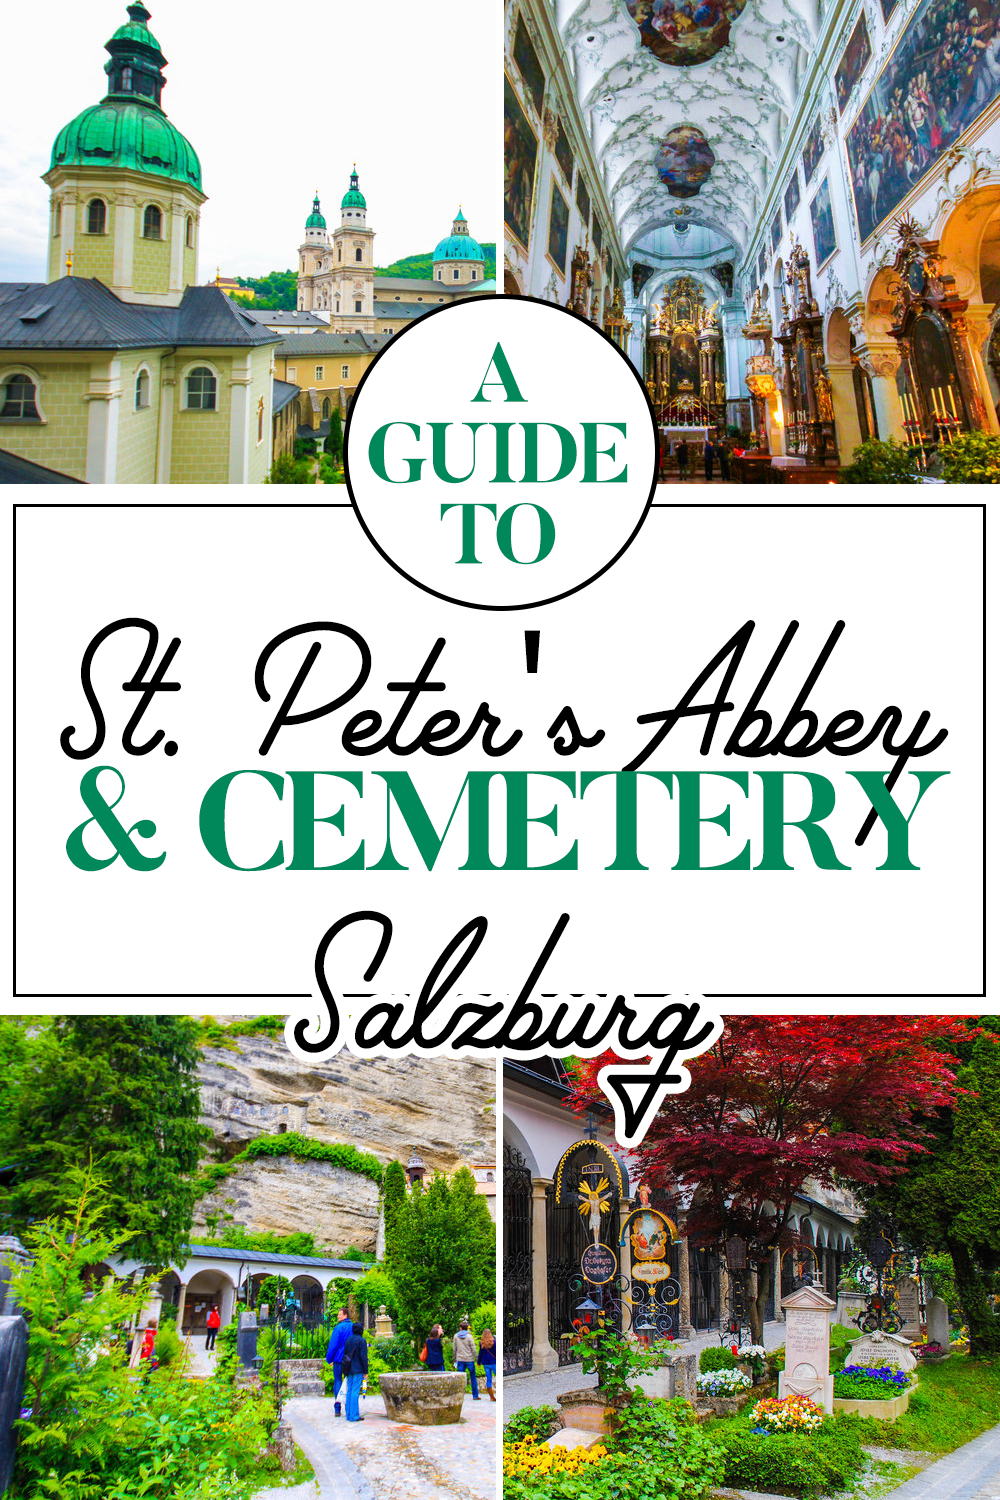 A Guide to St. Peter's Abbey and Cemetery